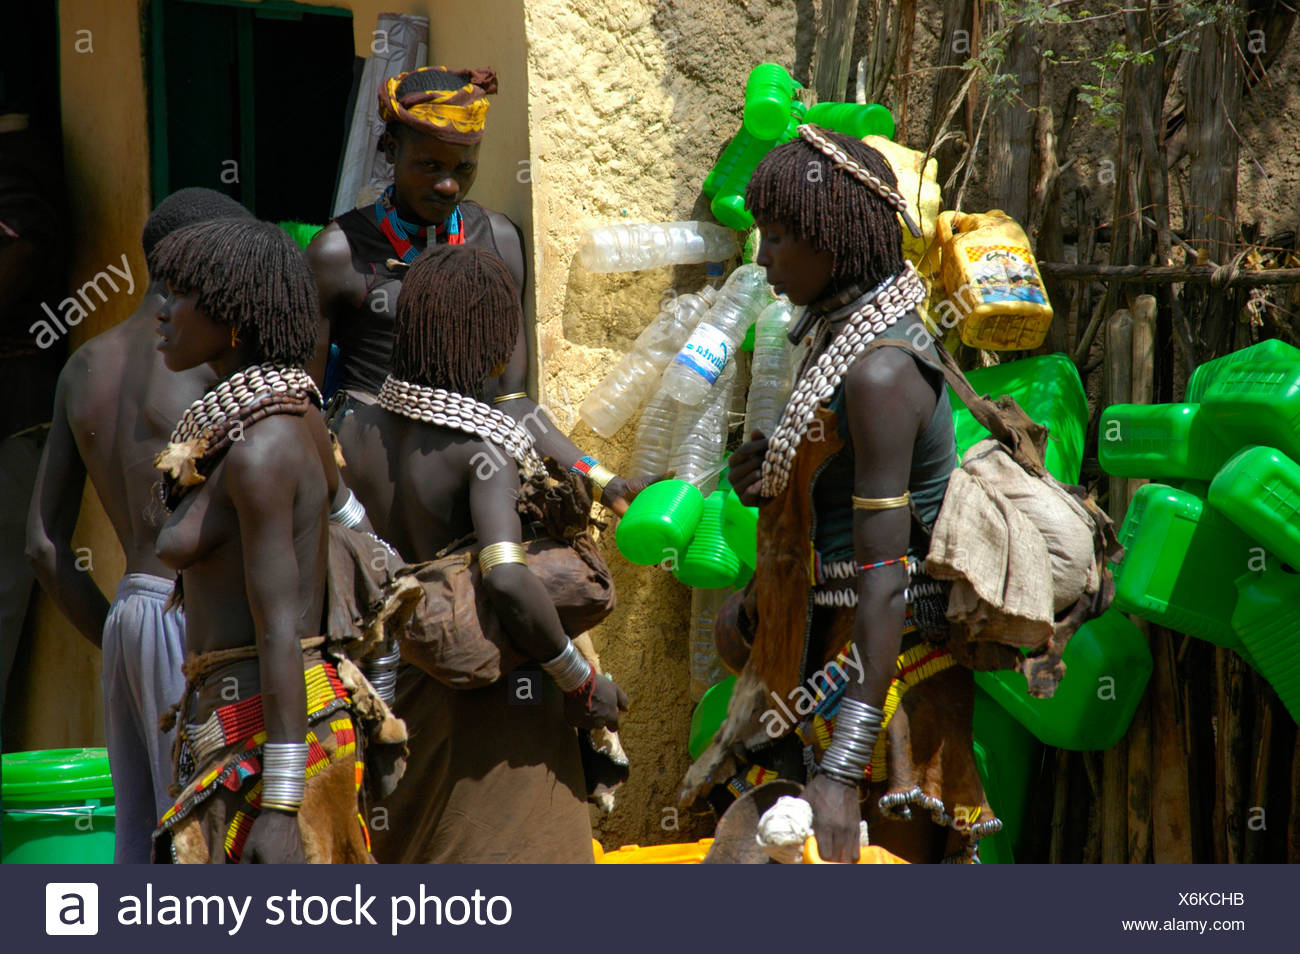 Black skinned Hamar people with white kauri mussel necklaces in front of green plastic canisters, market of Dimeka, Ethiopia, A Stock Photo